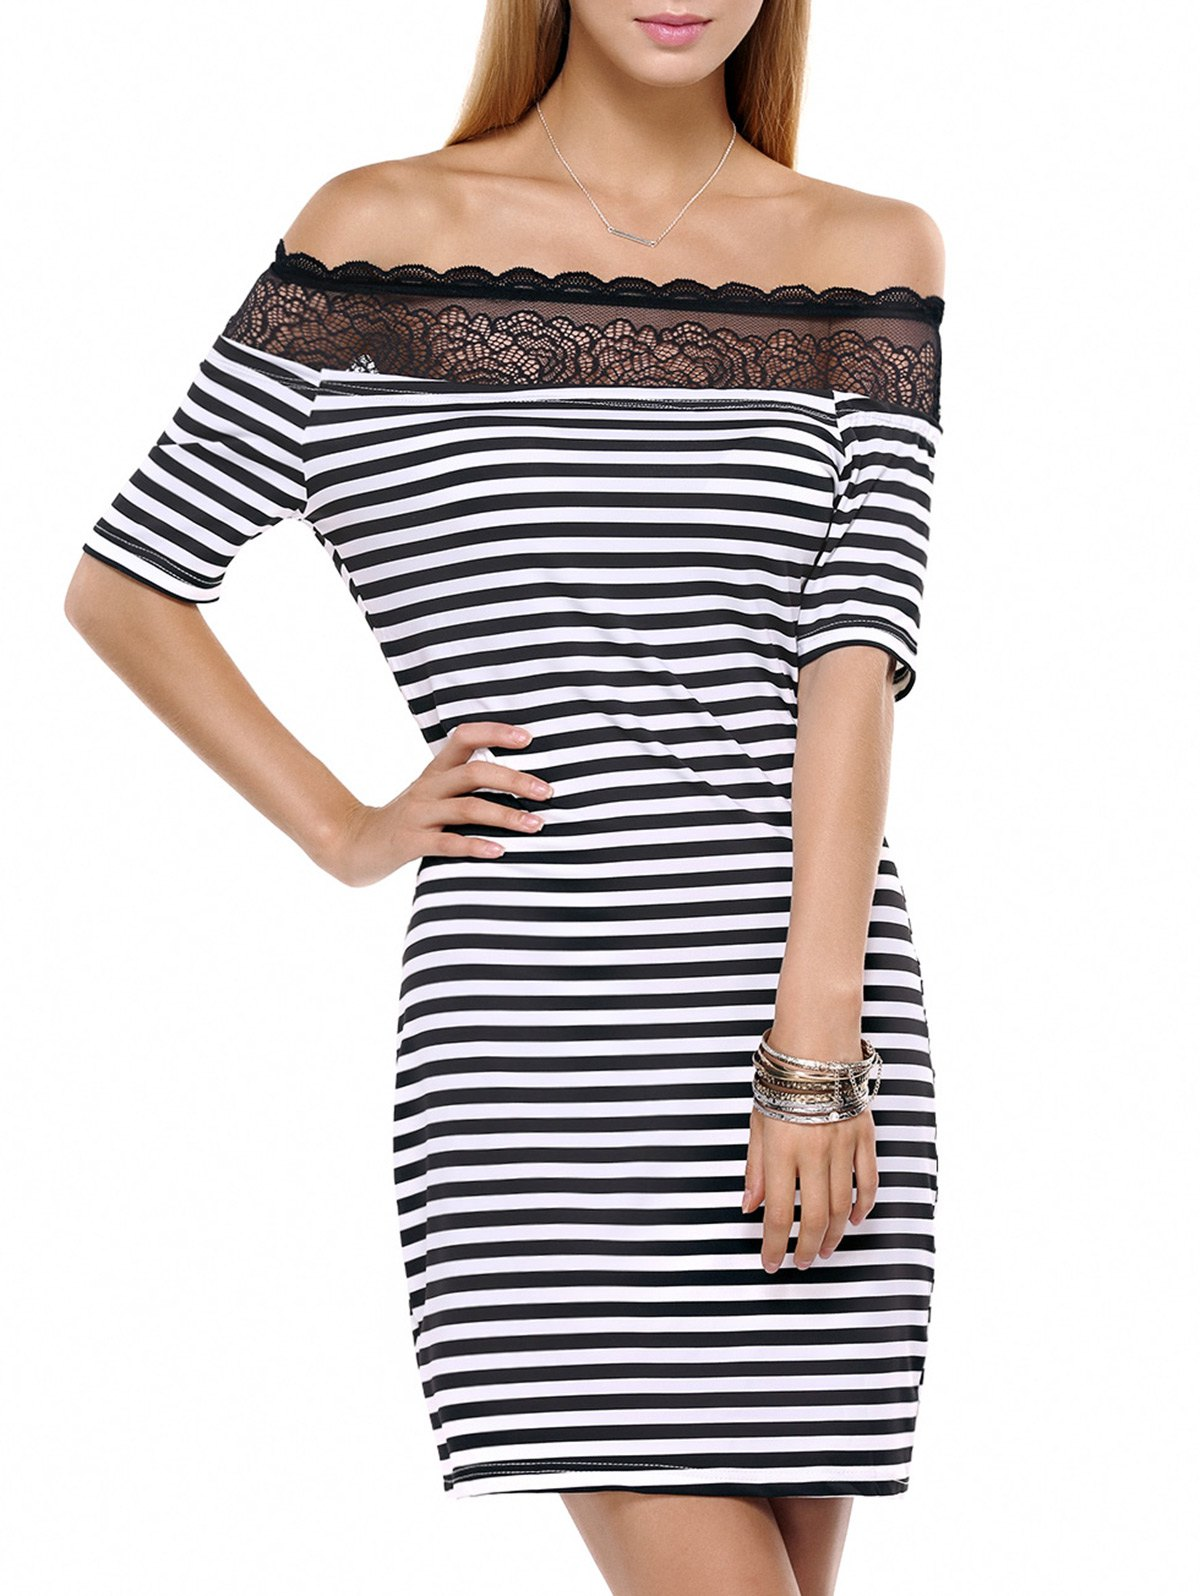 Striped Lace Splicing Off The Shoulder Dress